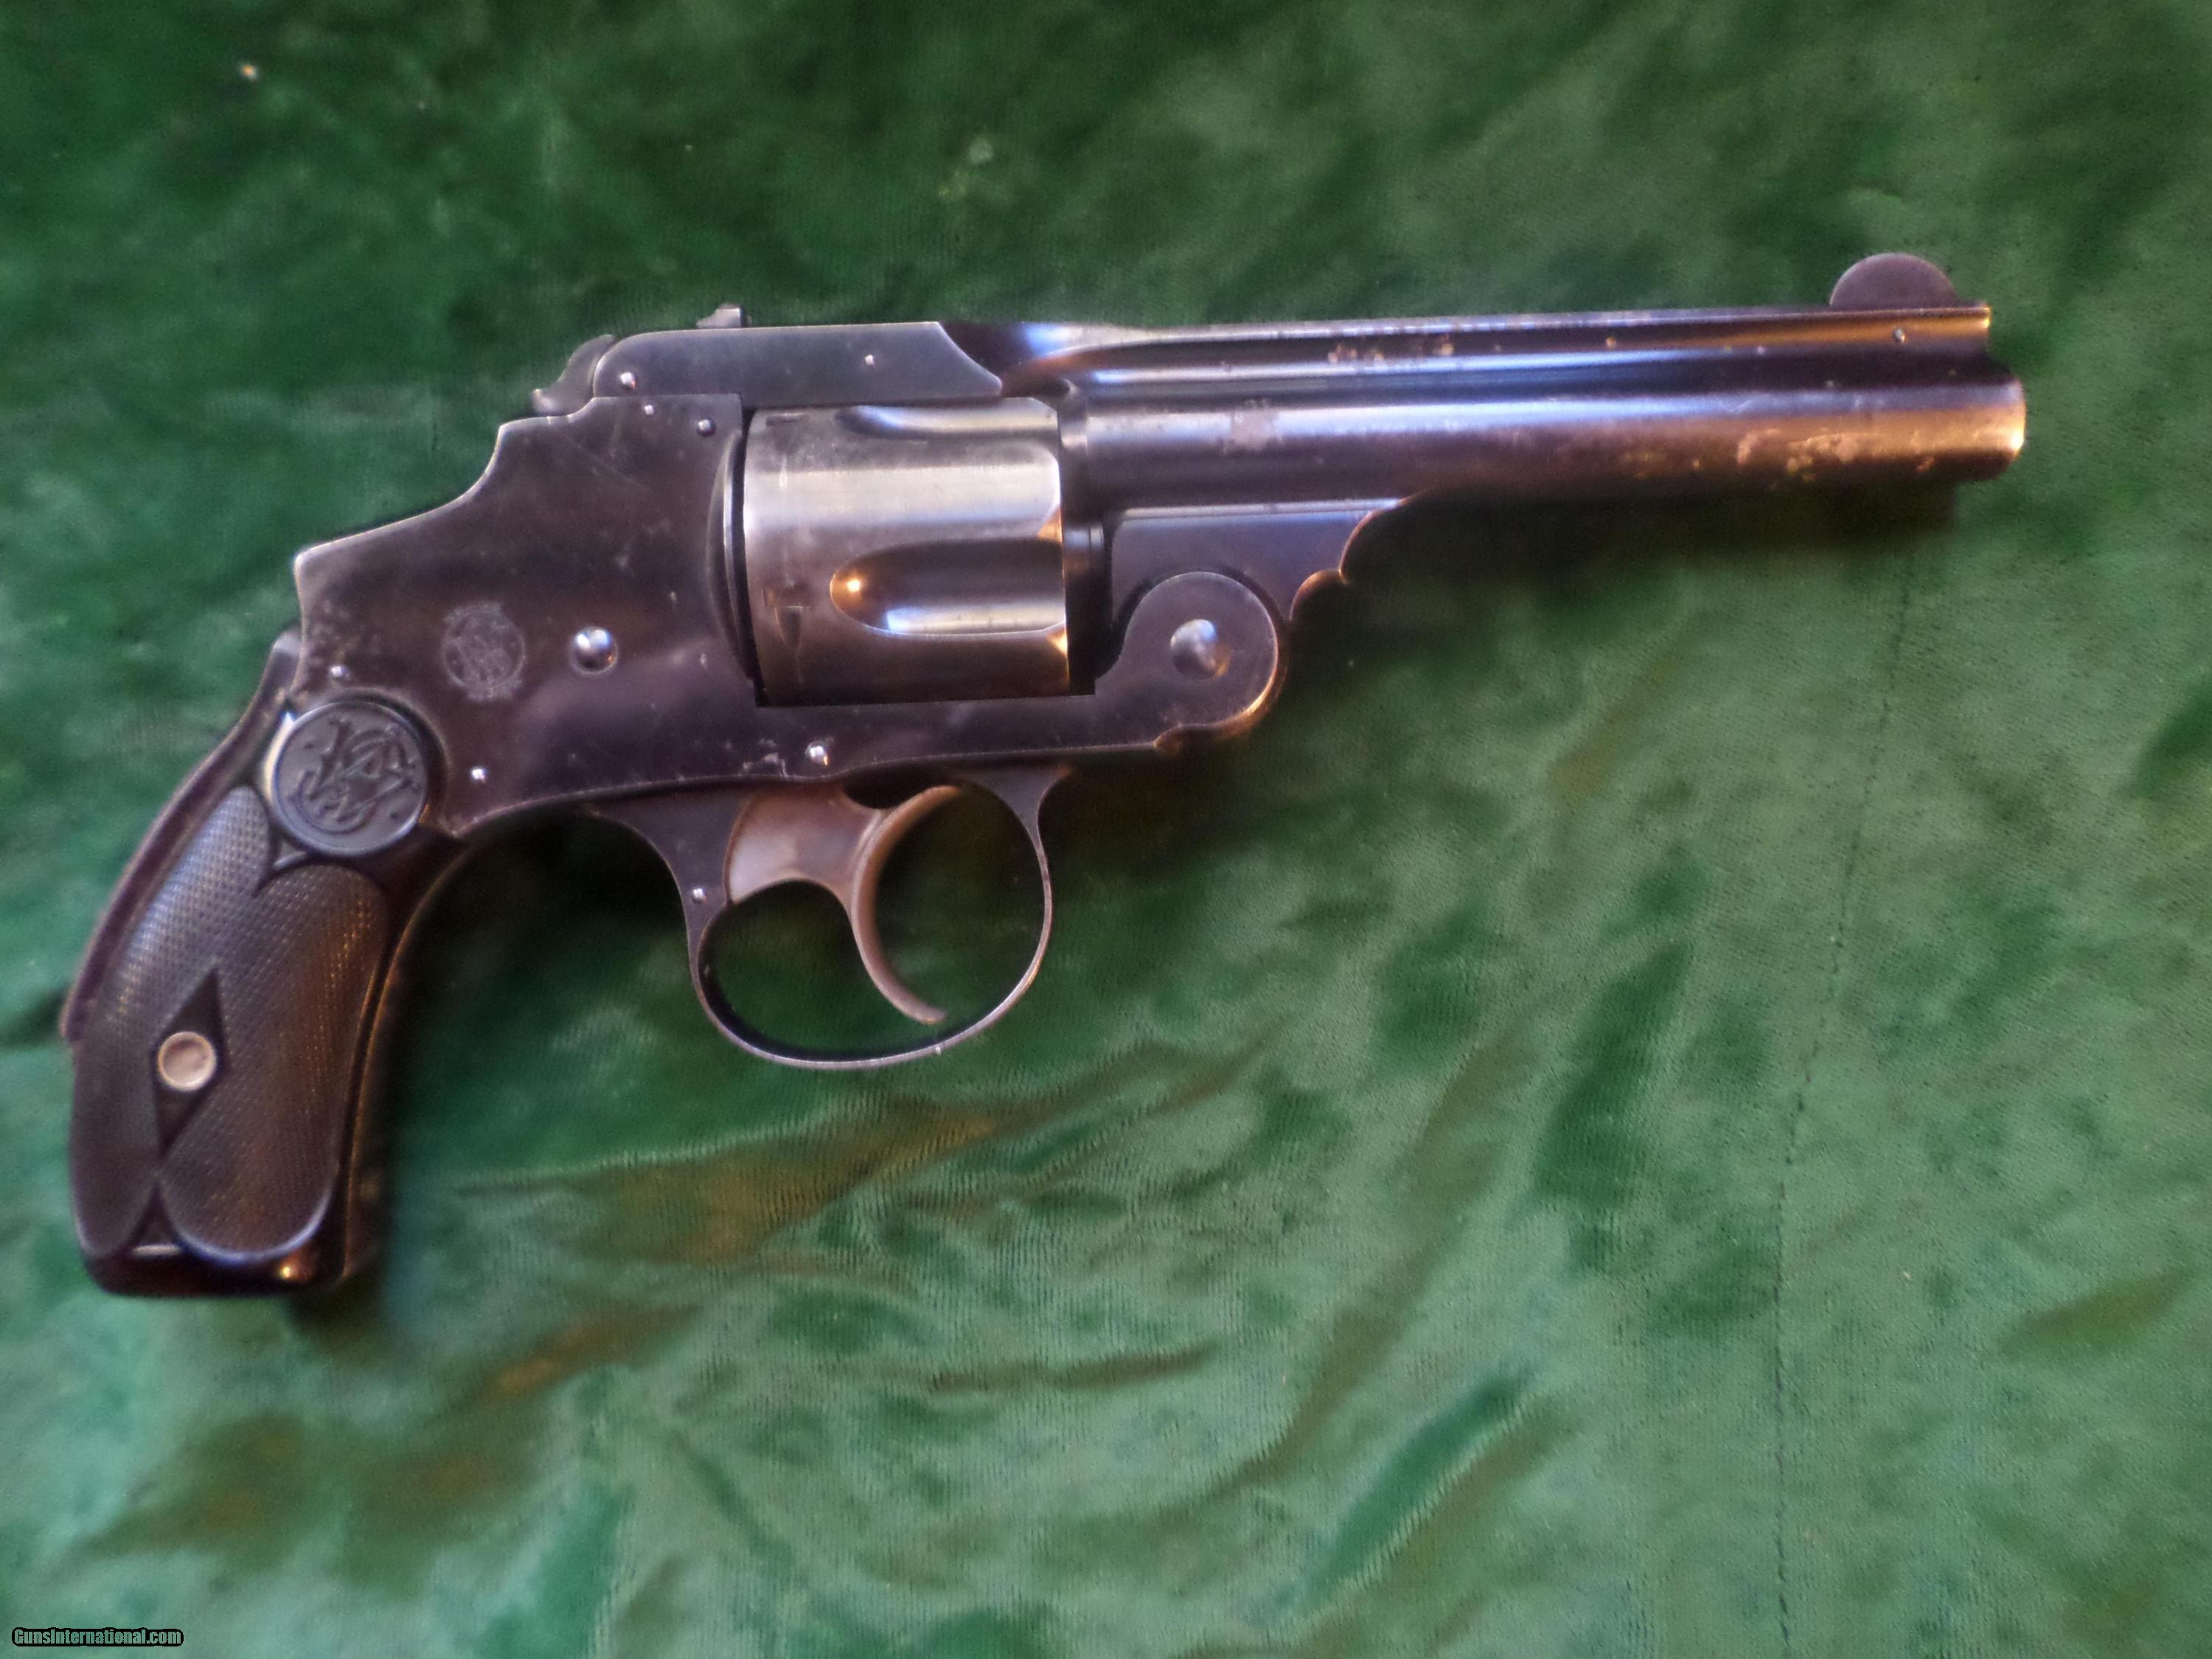 Smith & Wesson Safety Hammerless (New Departure) 38 S&W 4